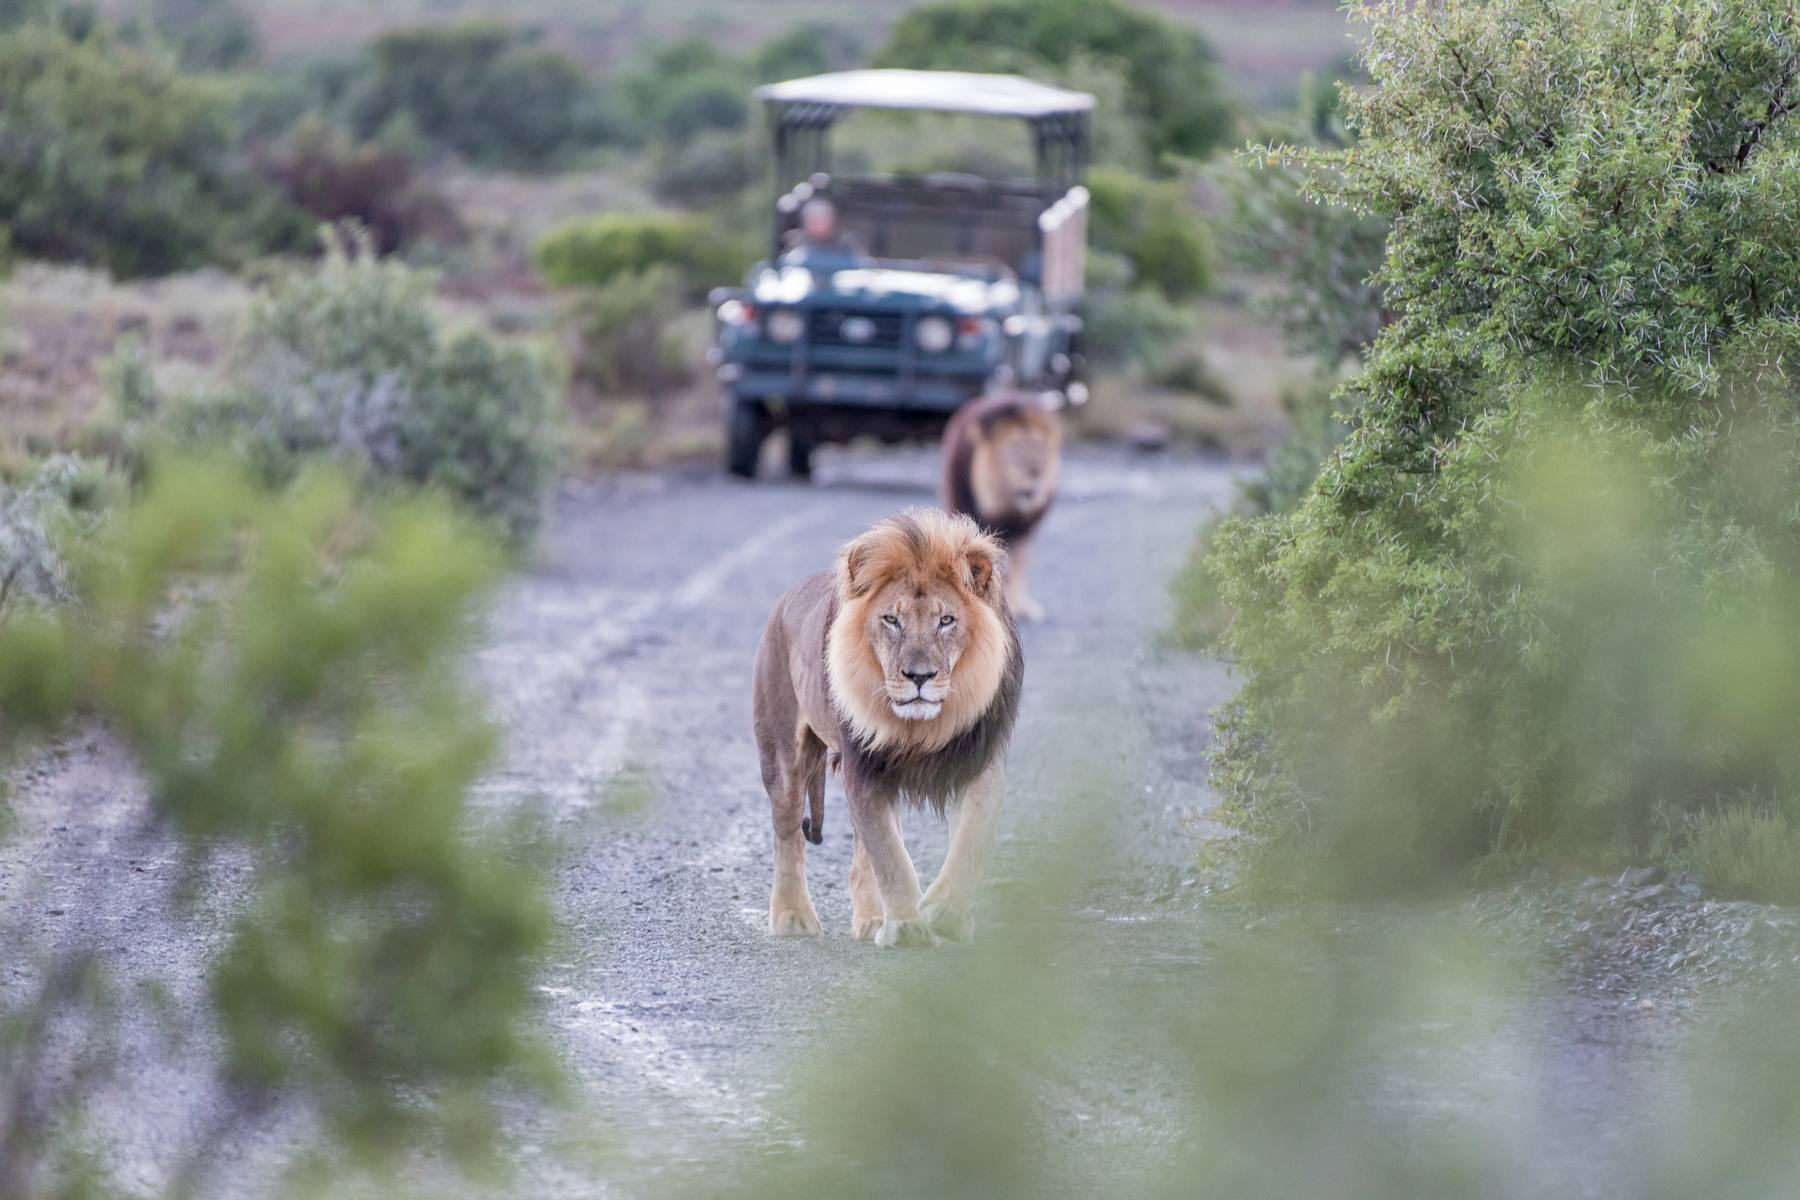 Lions on a safari in South Africa